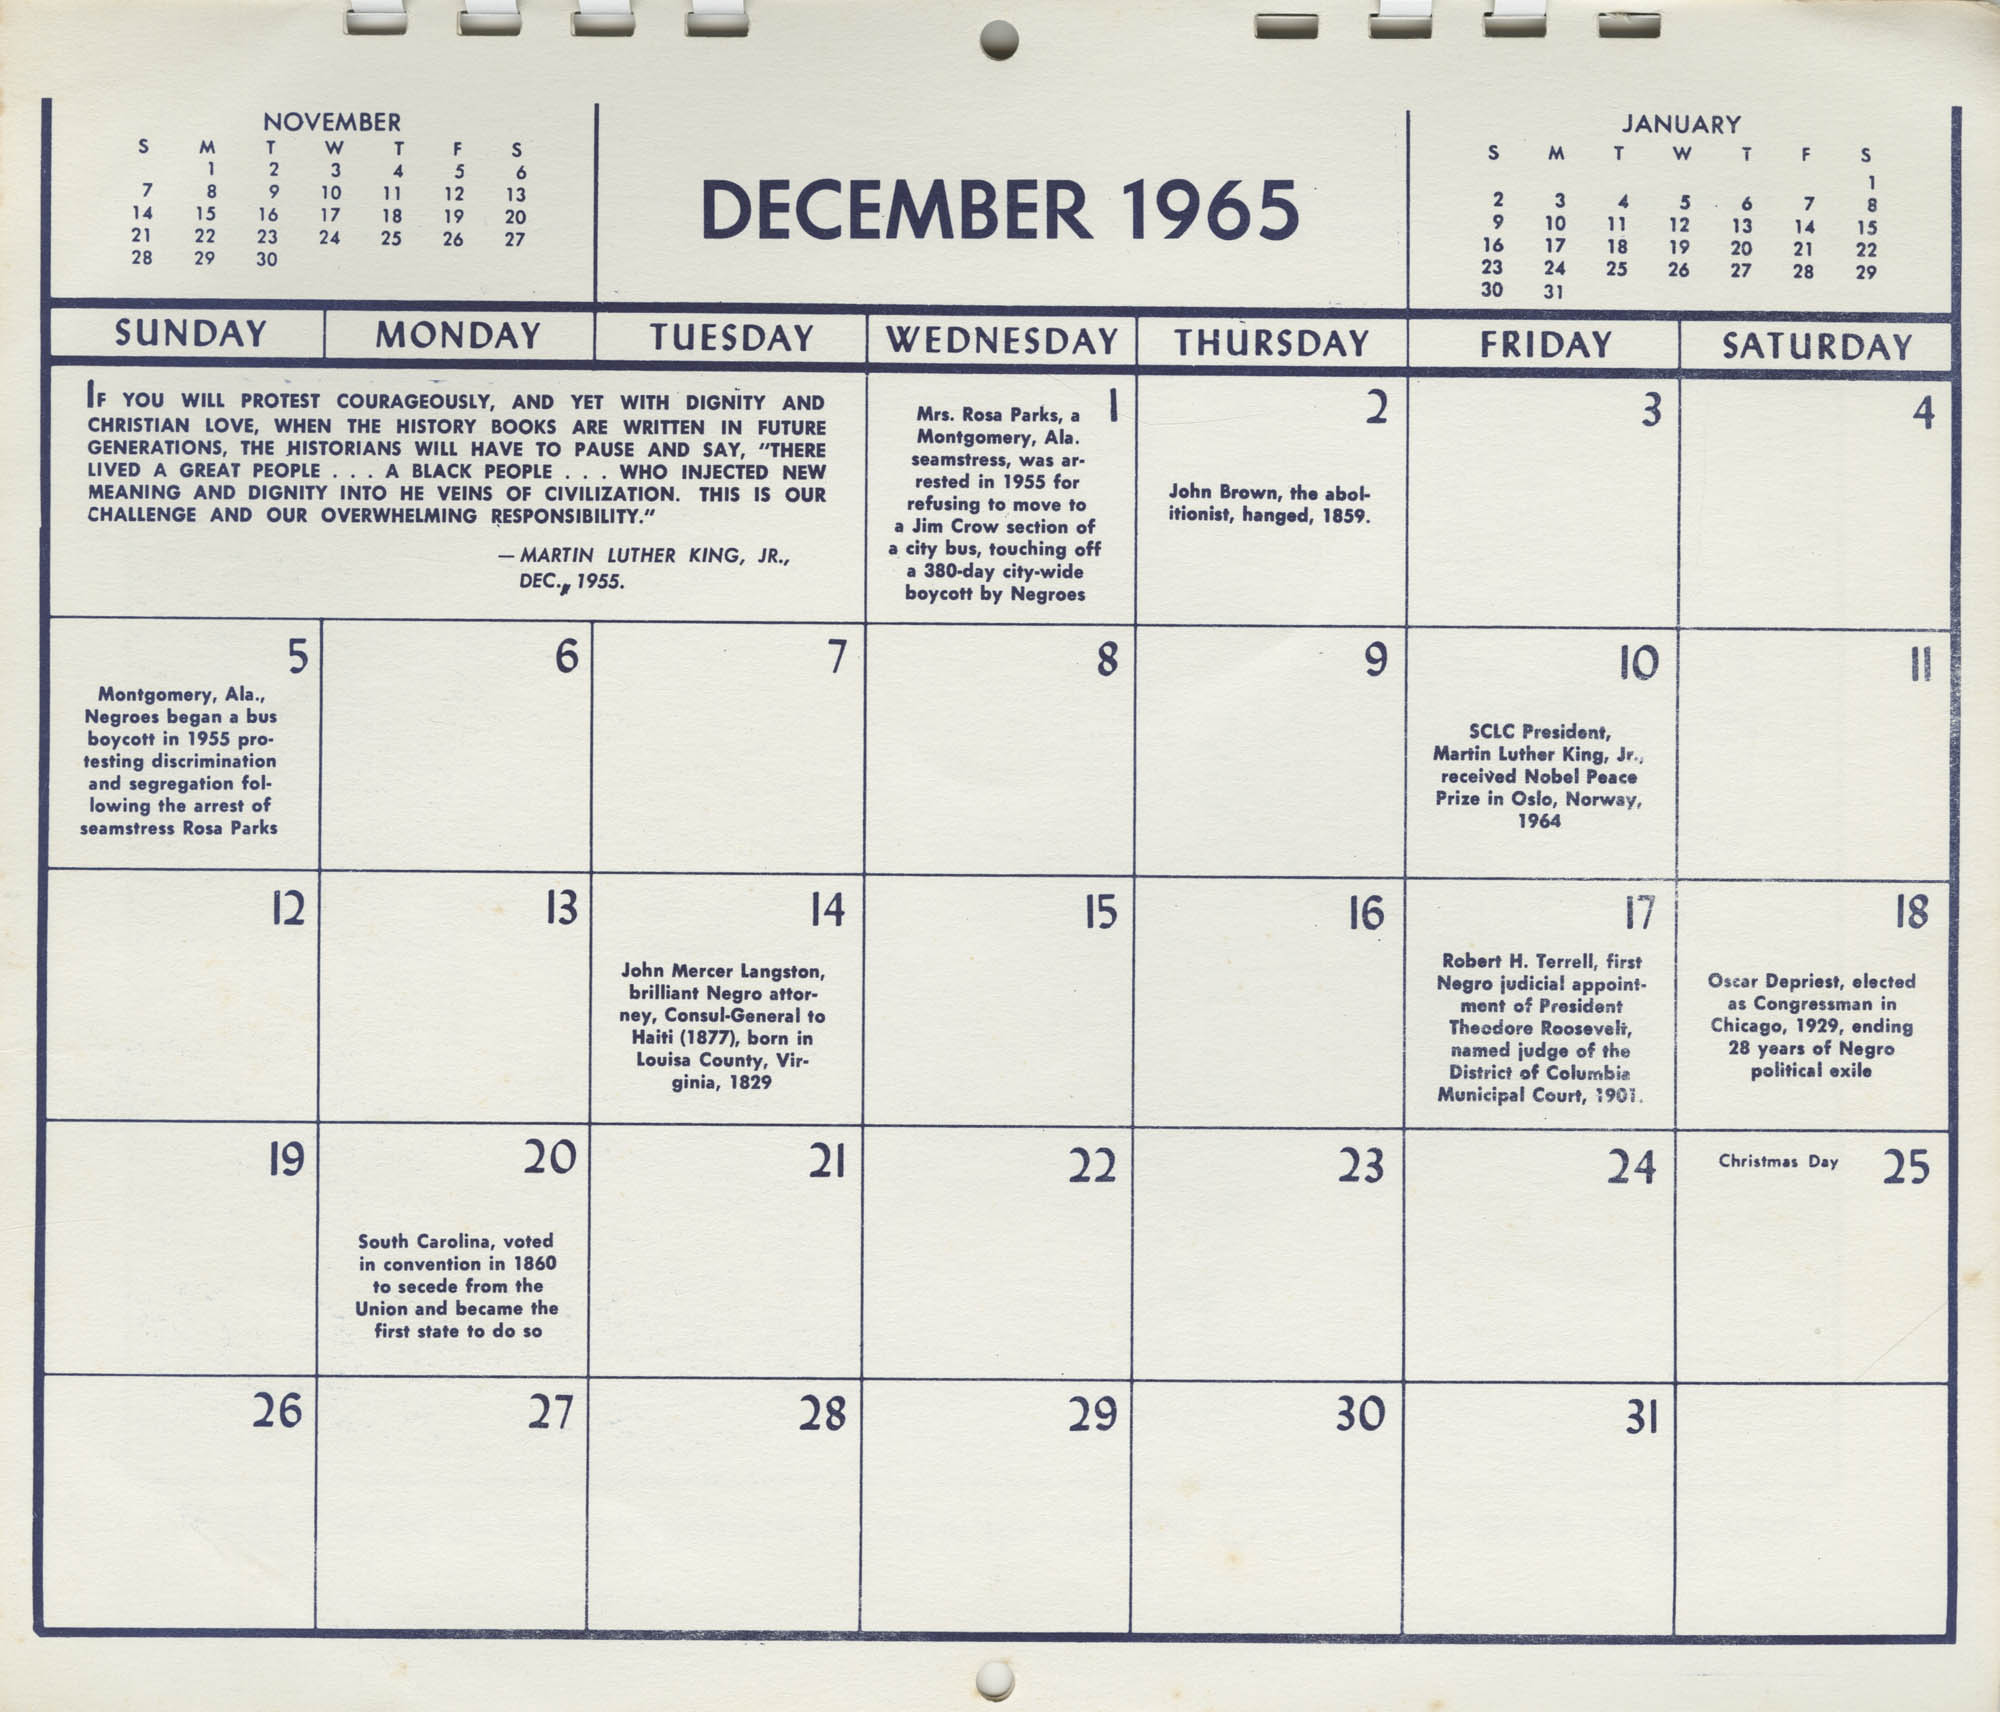 Southern Christian Leadership Conference Newsletter Calendar, December 1965, Bottom